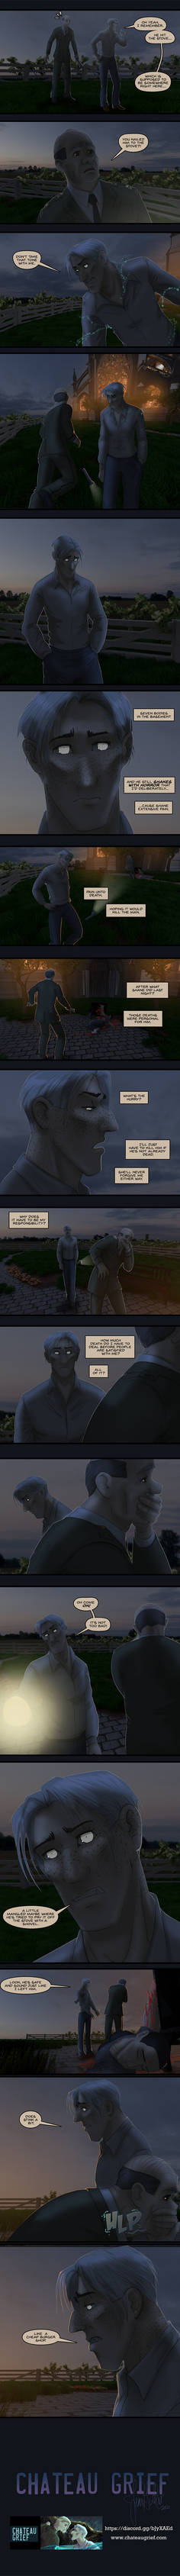 Chateau Grief 326